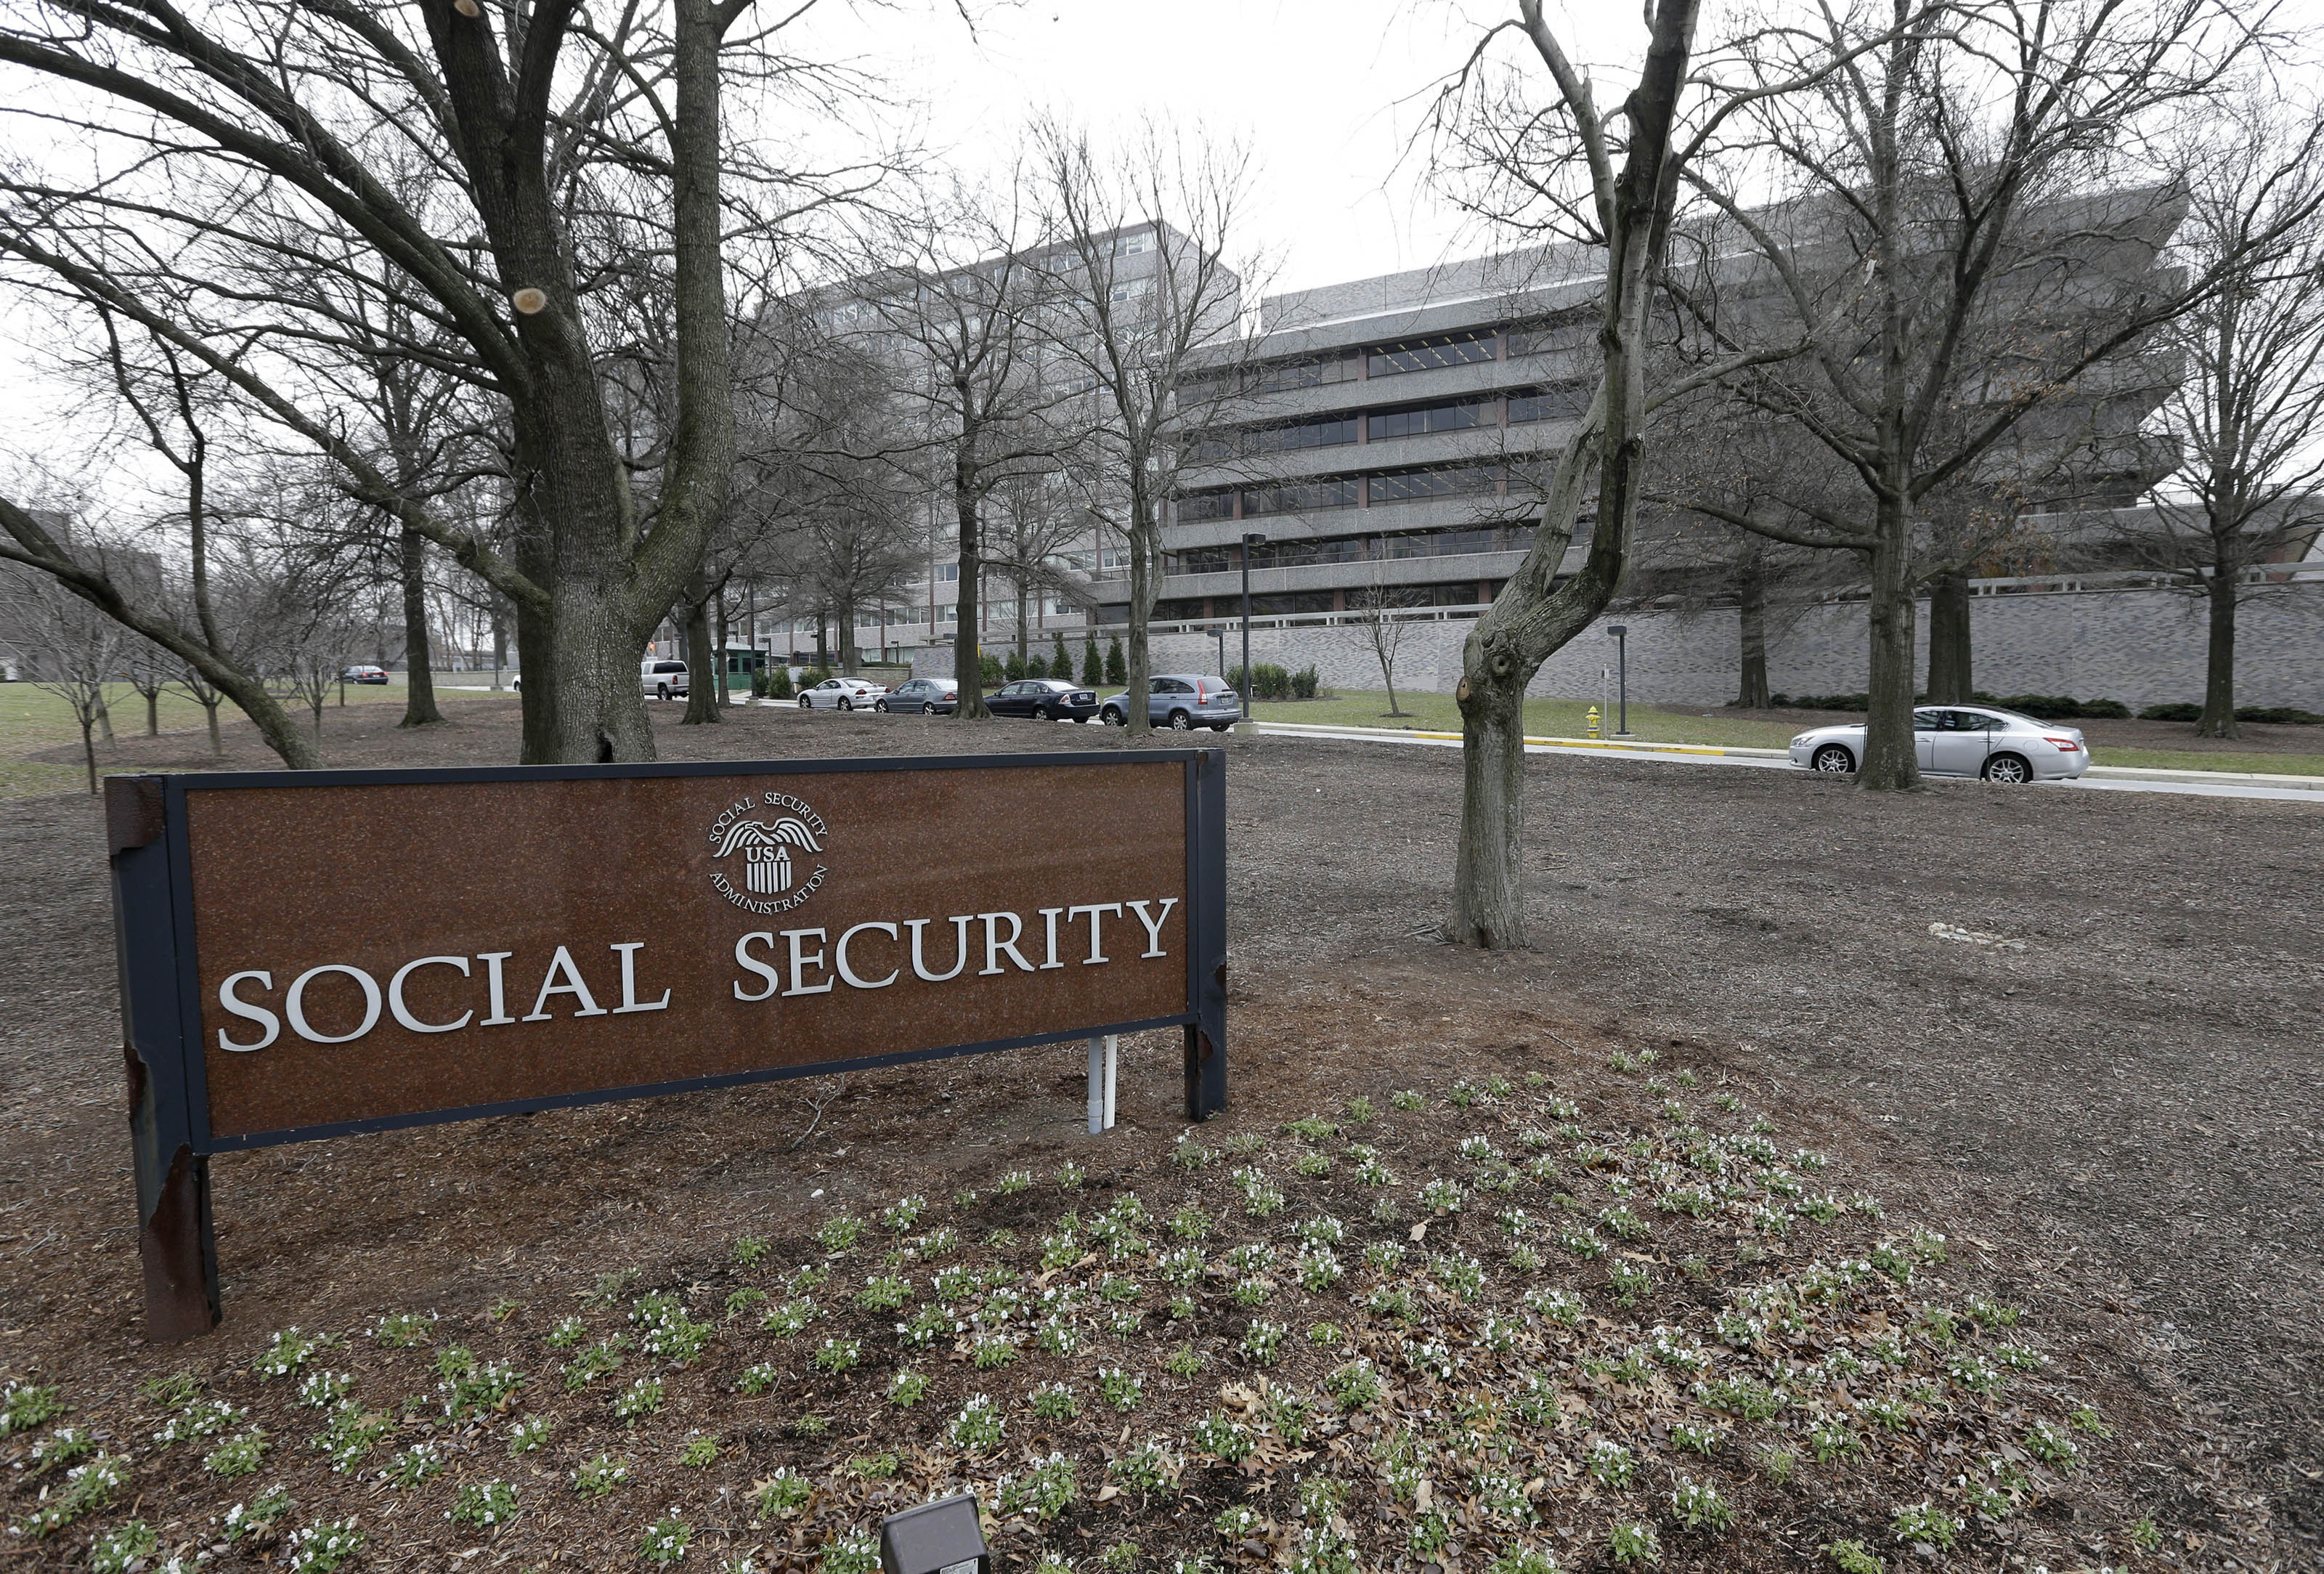 Social Security COLA FILE - In this Jan. 11, 2013 file photo, the Social Security Administration's main campus is seen in Woodlawn, Md. Millions of Social Security recipients and other retirees can expect another small increase in benefits in 2018. Preliminary figures suggest an increase of around 2 percent. That would mean an extra $25 a month for the average beneficiary. The Social Security Administration is scheduled to announce the cost-of-living adjustment on Oct. 13, 2017.(AP Photo/Patrick Semansky, File)